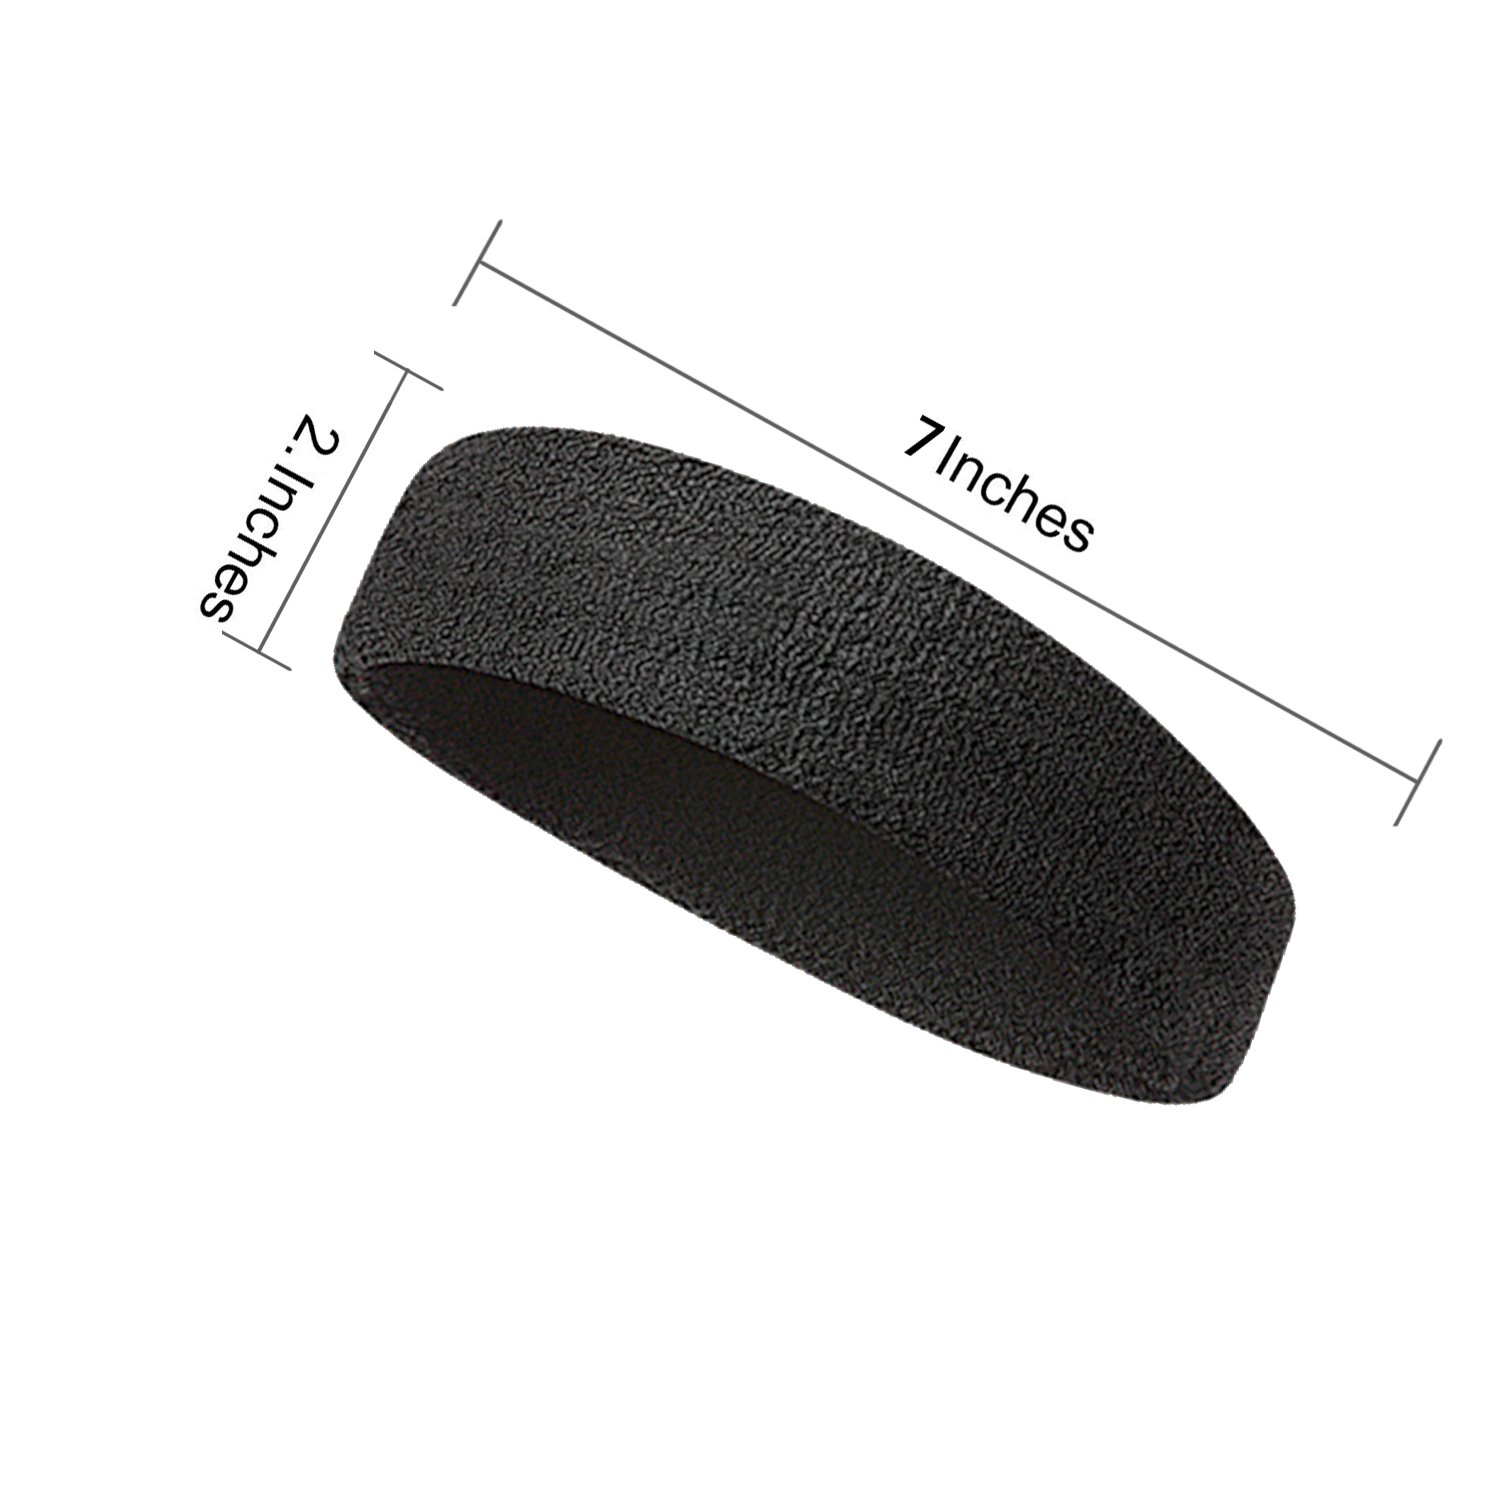 Elehere 2018 New Sweatband Wristband for Sports Basketball Football Absorbent Party Outdoor 3.5'' Pack of 6 (Black- Headbands & Wristbands) by Elehere (Image #2)